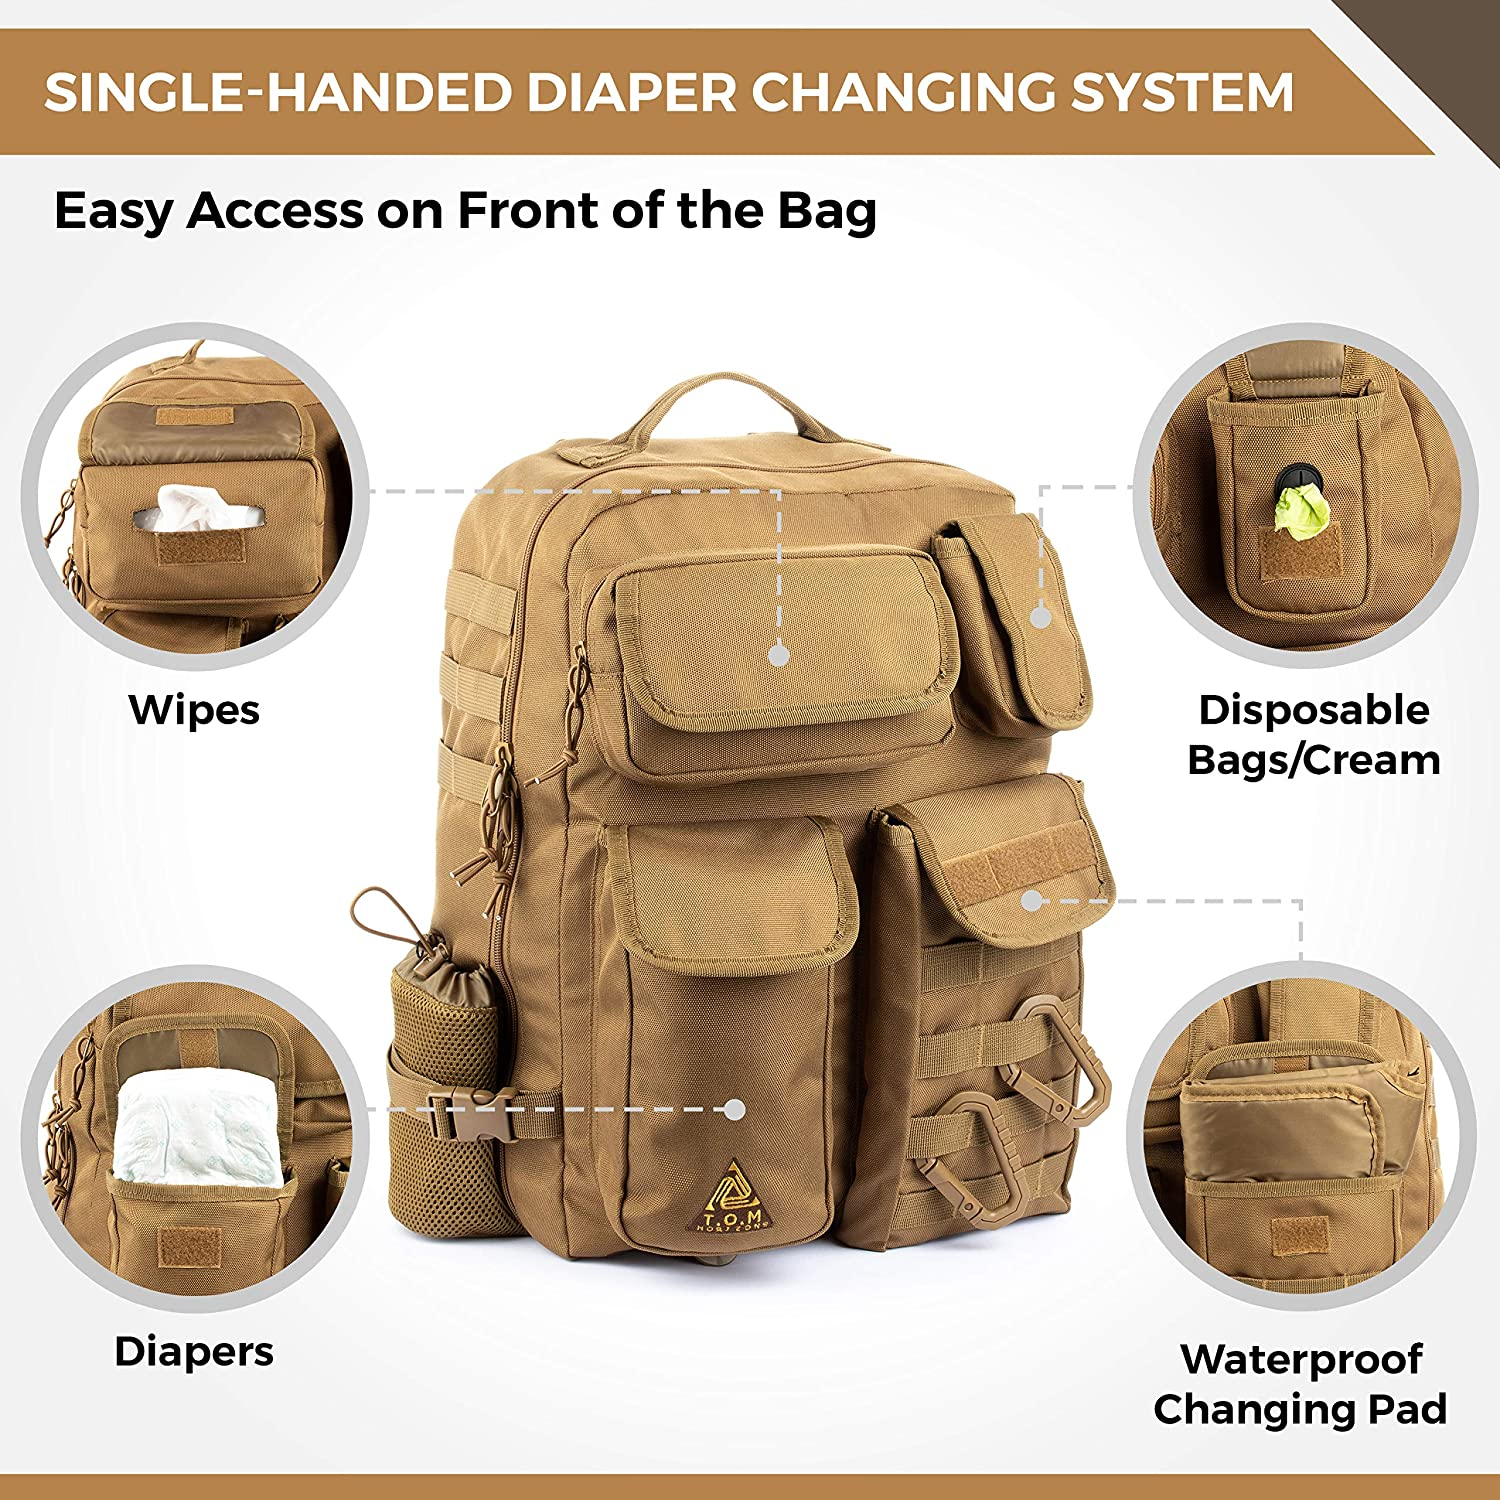 Sling Diaper Bag for Dad; Single-handed Diaper Changing System. Waterproof Changing Pad, Insulated Bottle Pouches. Men's Diaper Bag Backpack NEW for Fall 2020